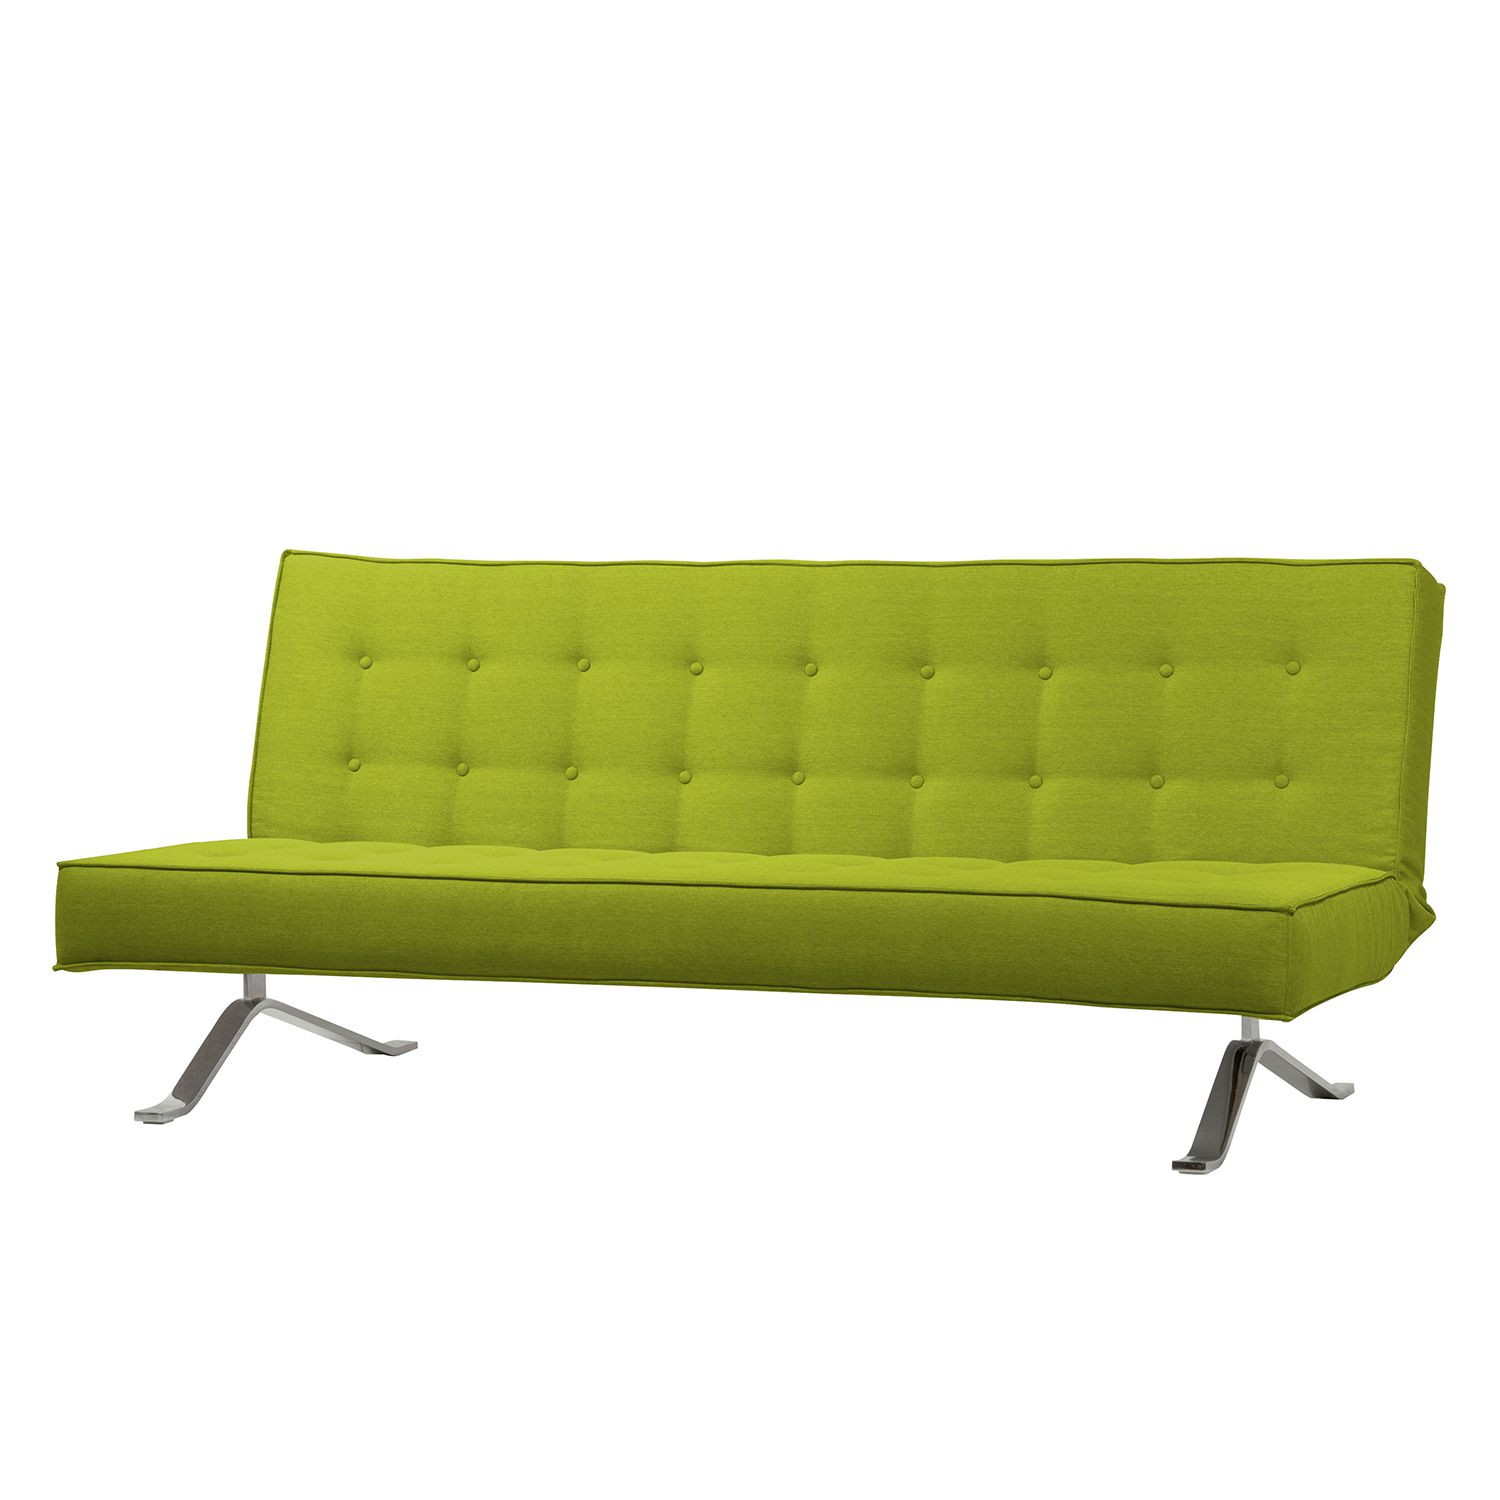 Schlafsofa Wave Two - Webstoff - Stoff Zahira Limette